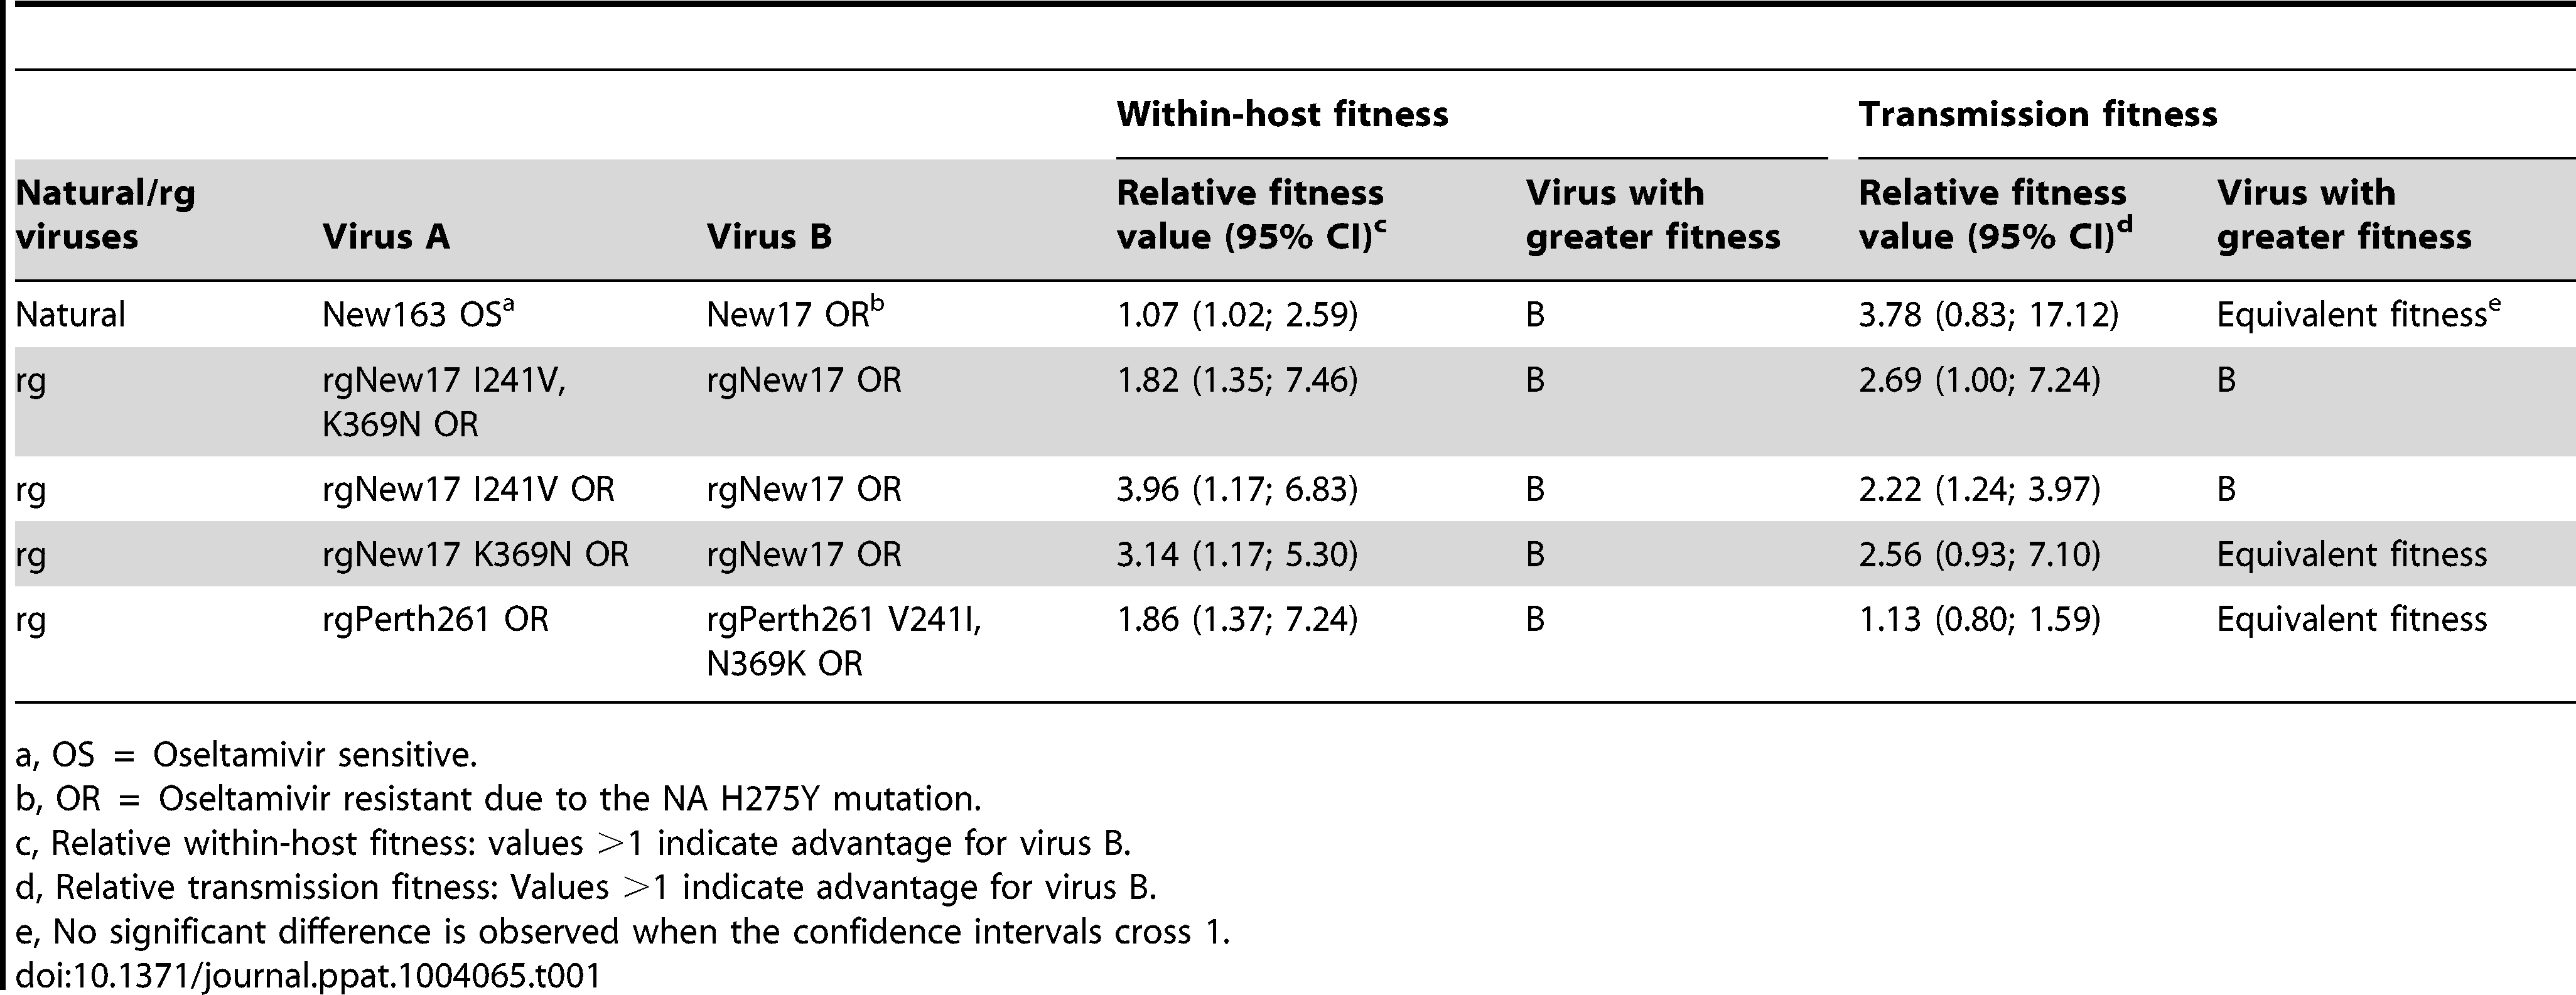 Relative within-host and transmission fitness of virus pairs used in ferret experiments.